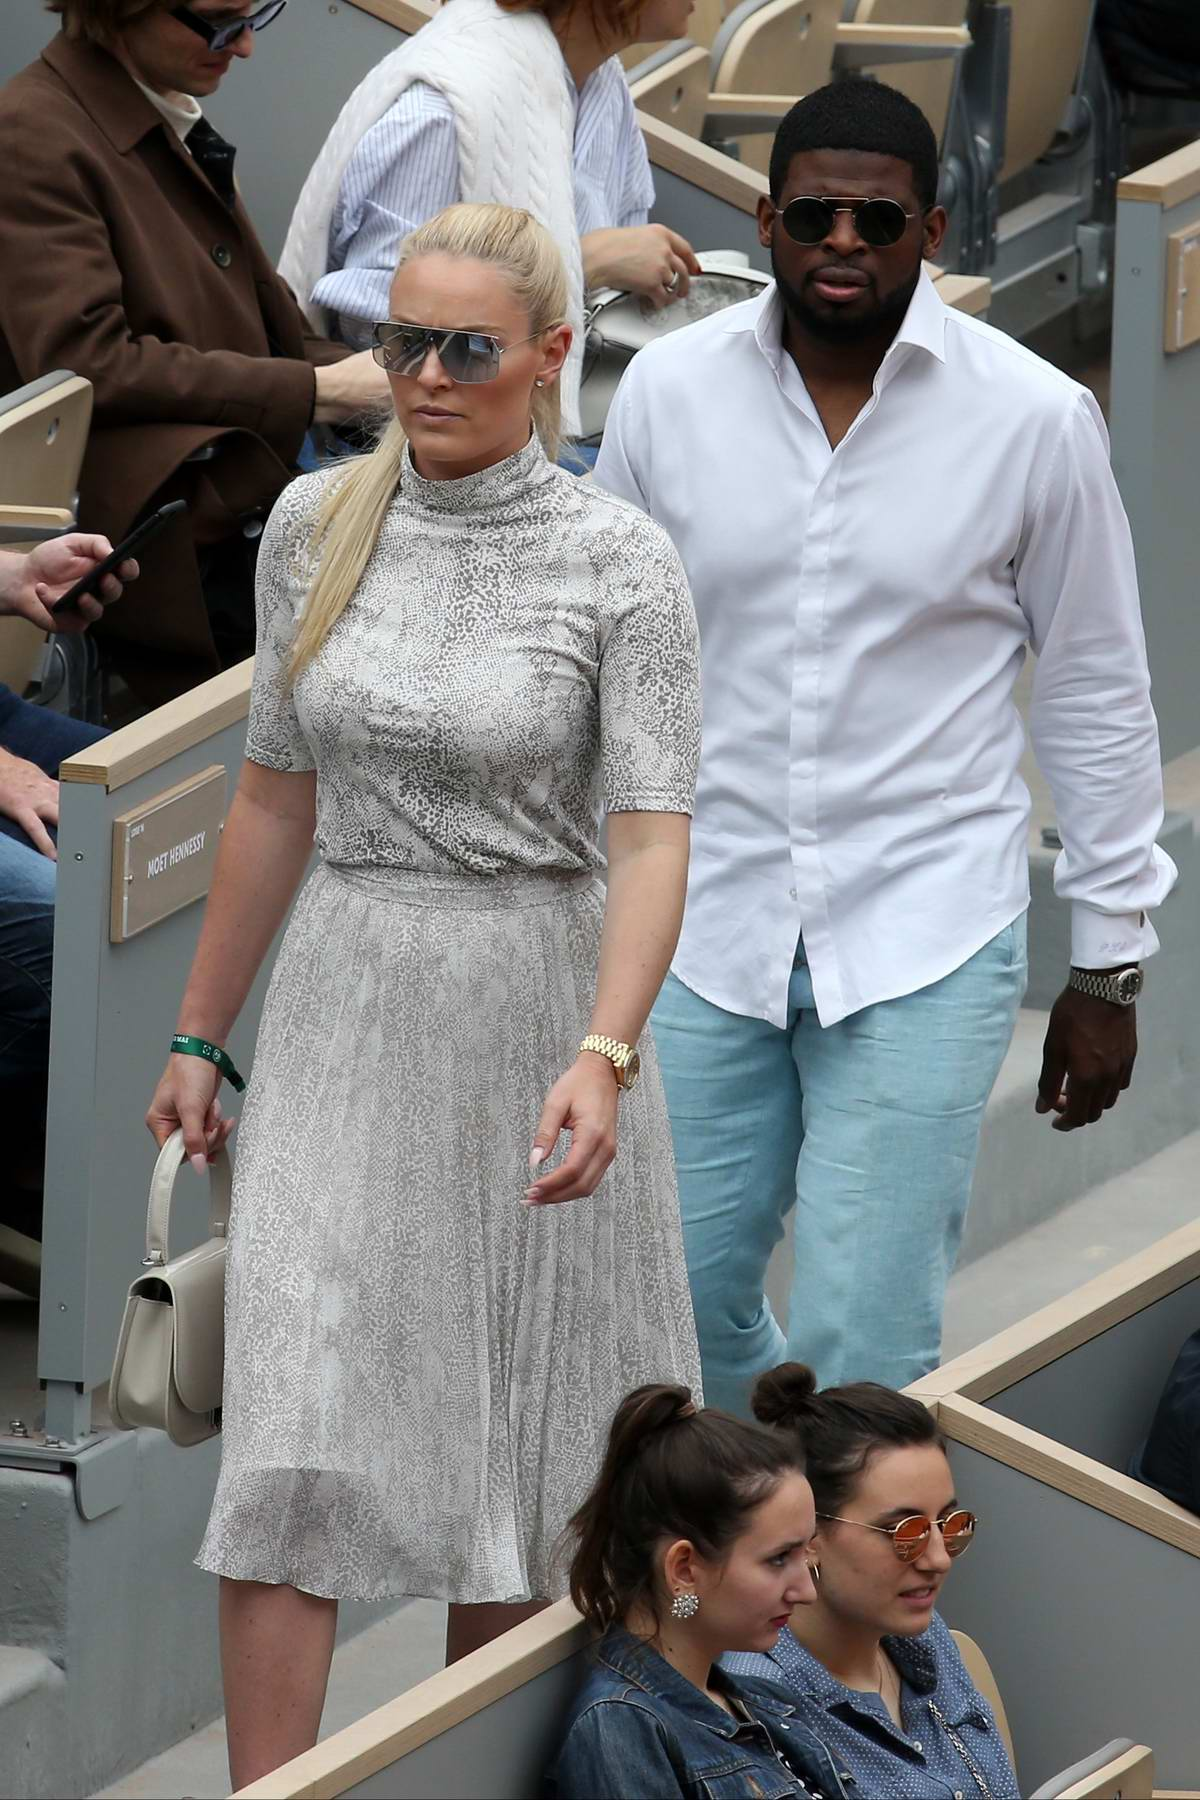 Lindsey Vonn and P.K. Subban attend Serena Williams' match during 2019 French Open, Day 5 at Roland-Garros in Paris, France